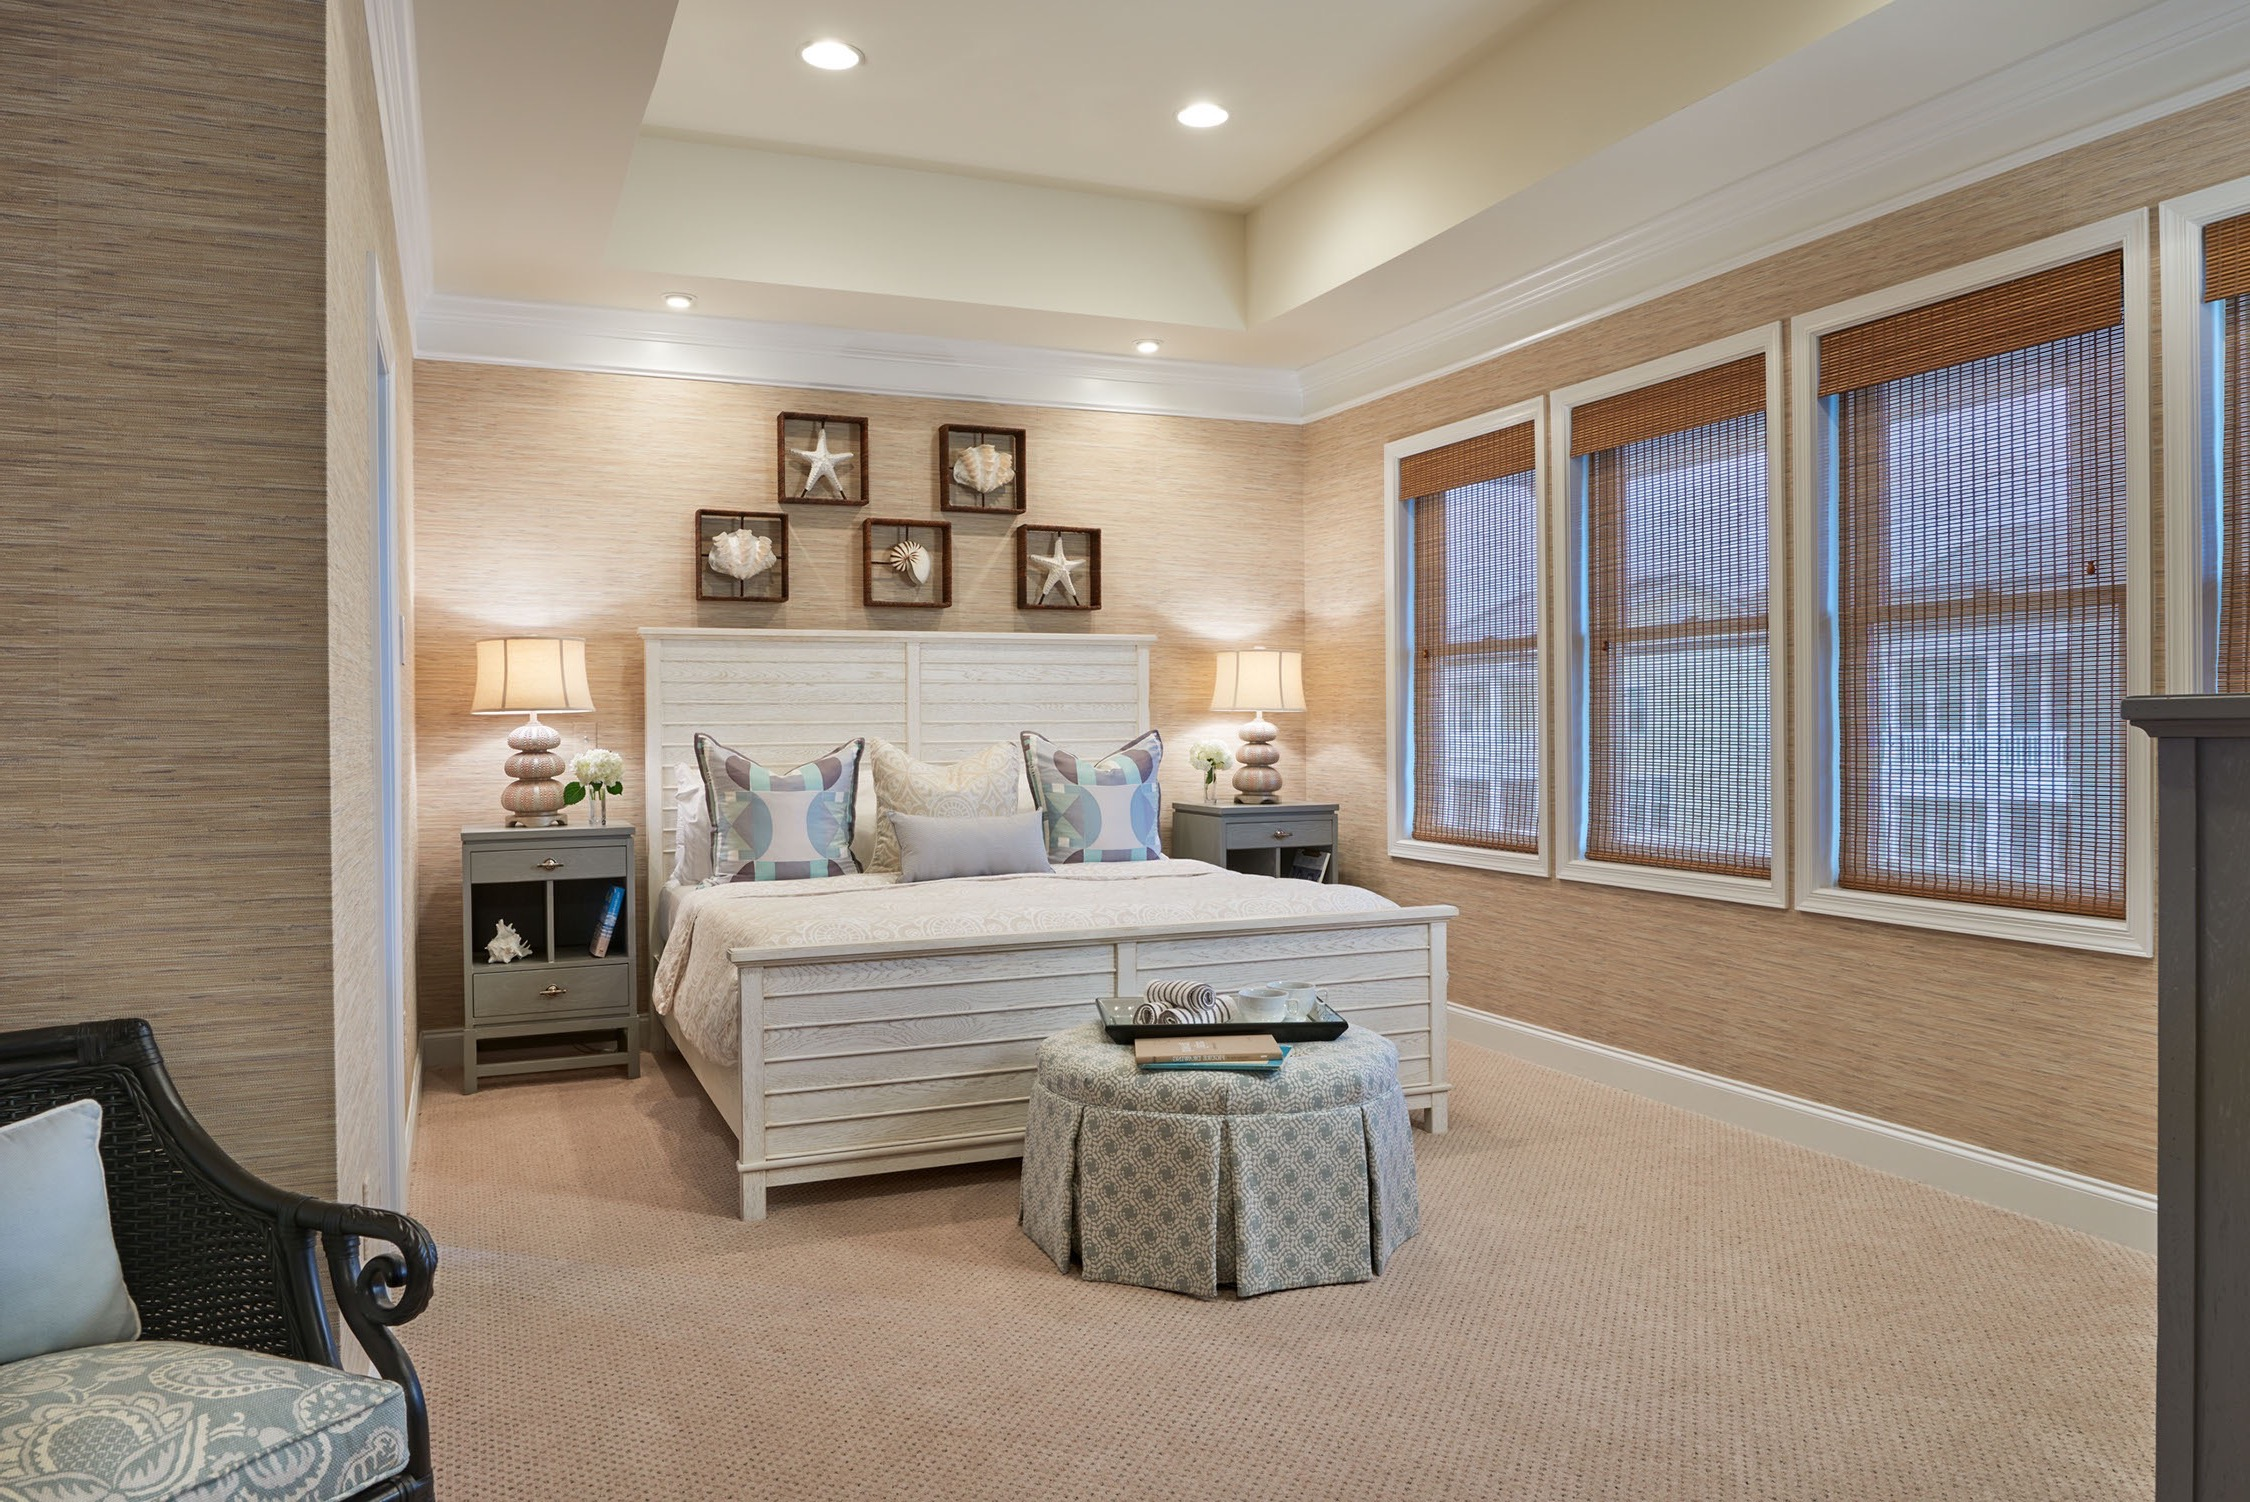 Traditional Bedroom Remodel In Romantic Design (View 8 of 18)